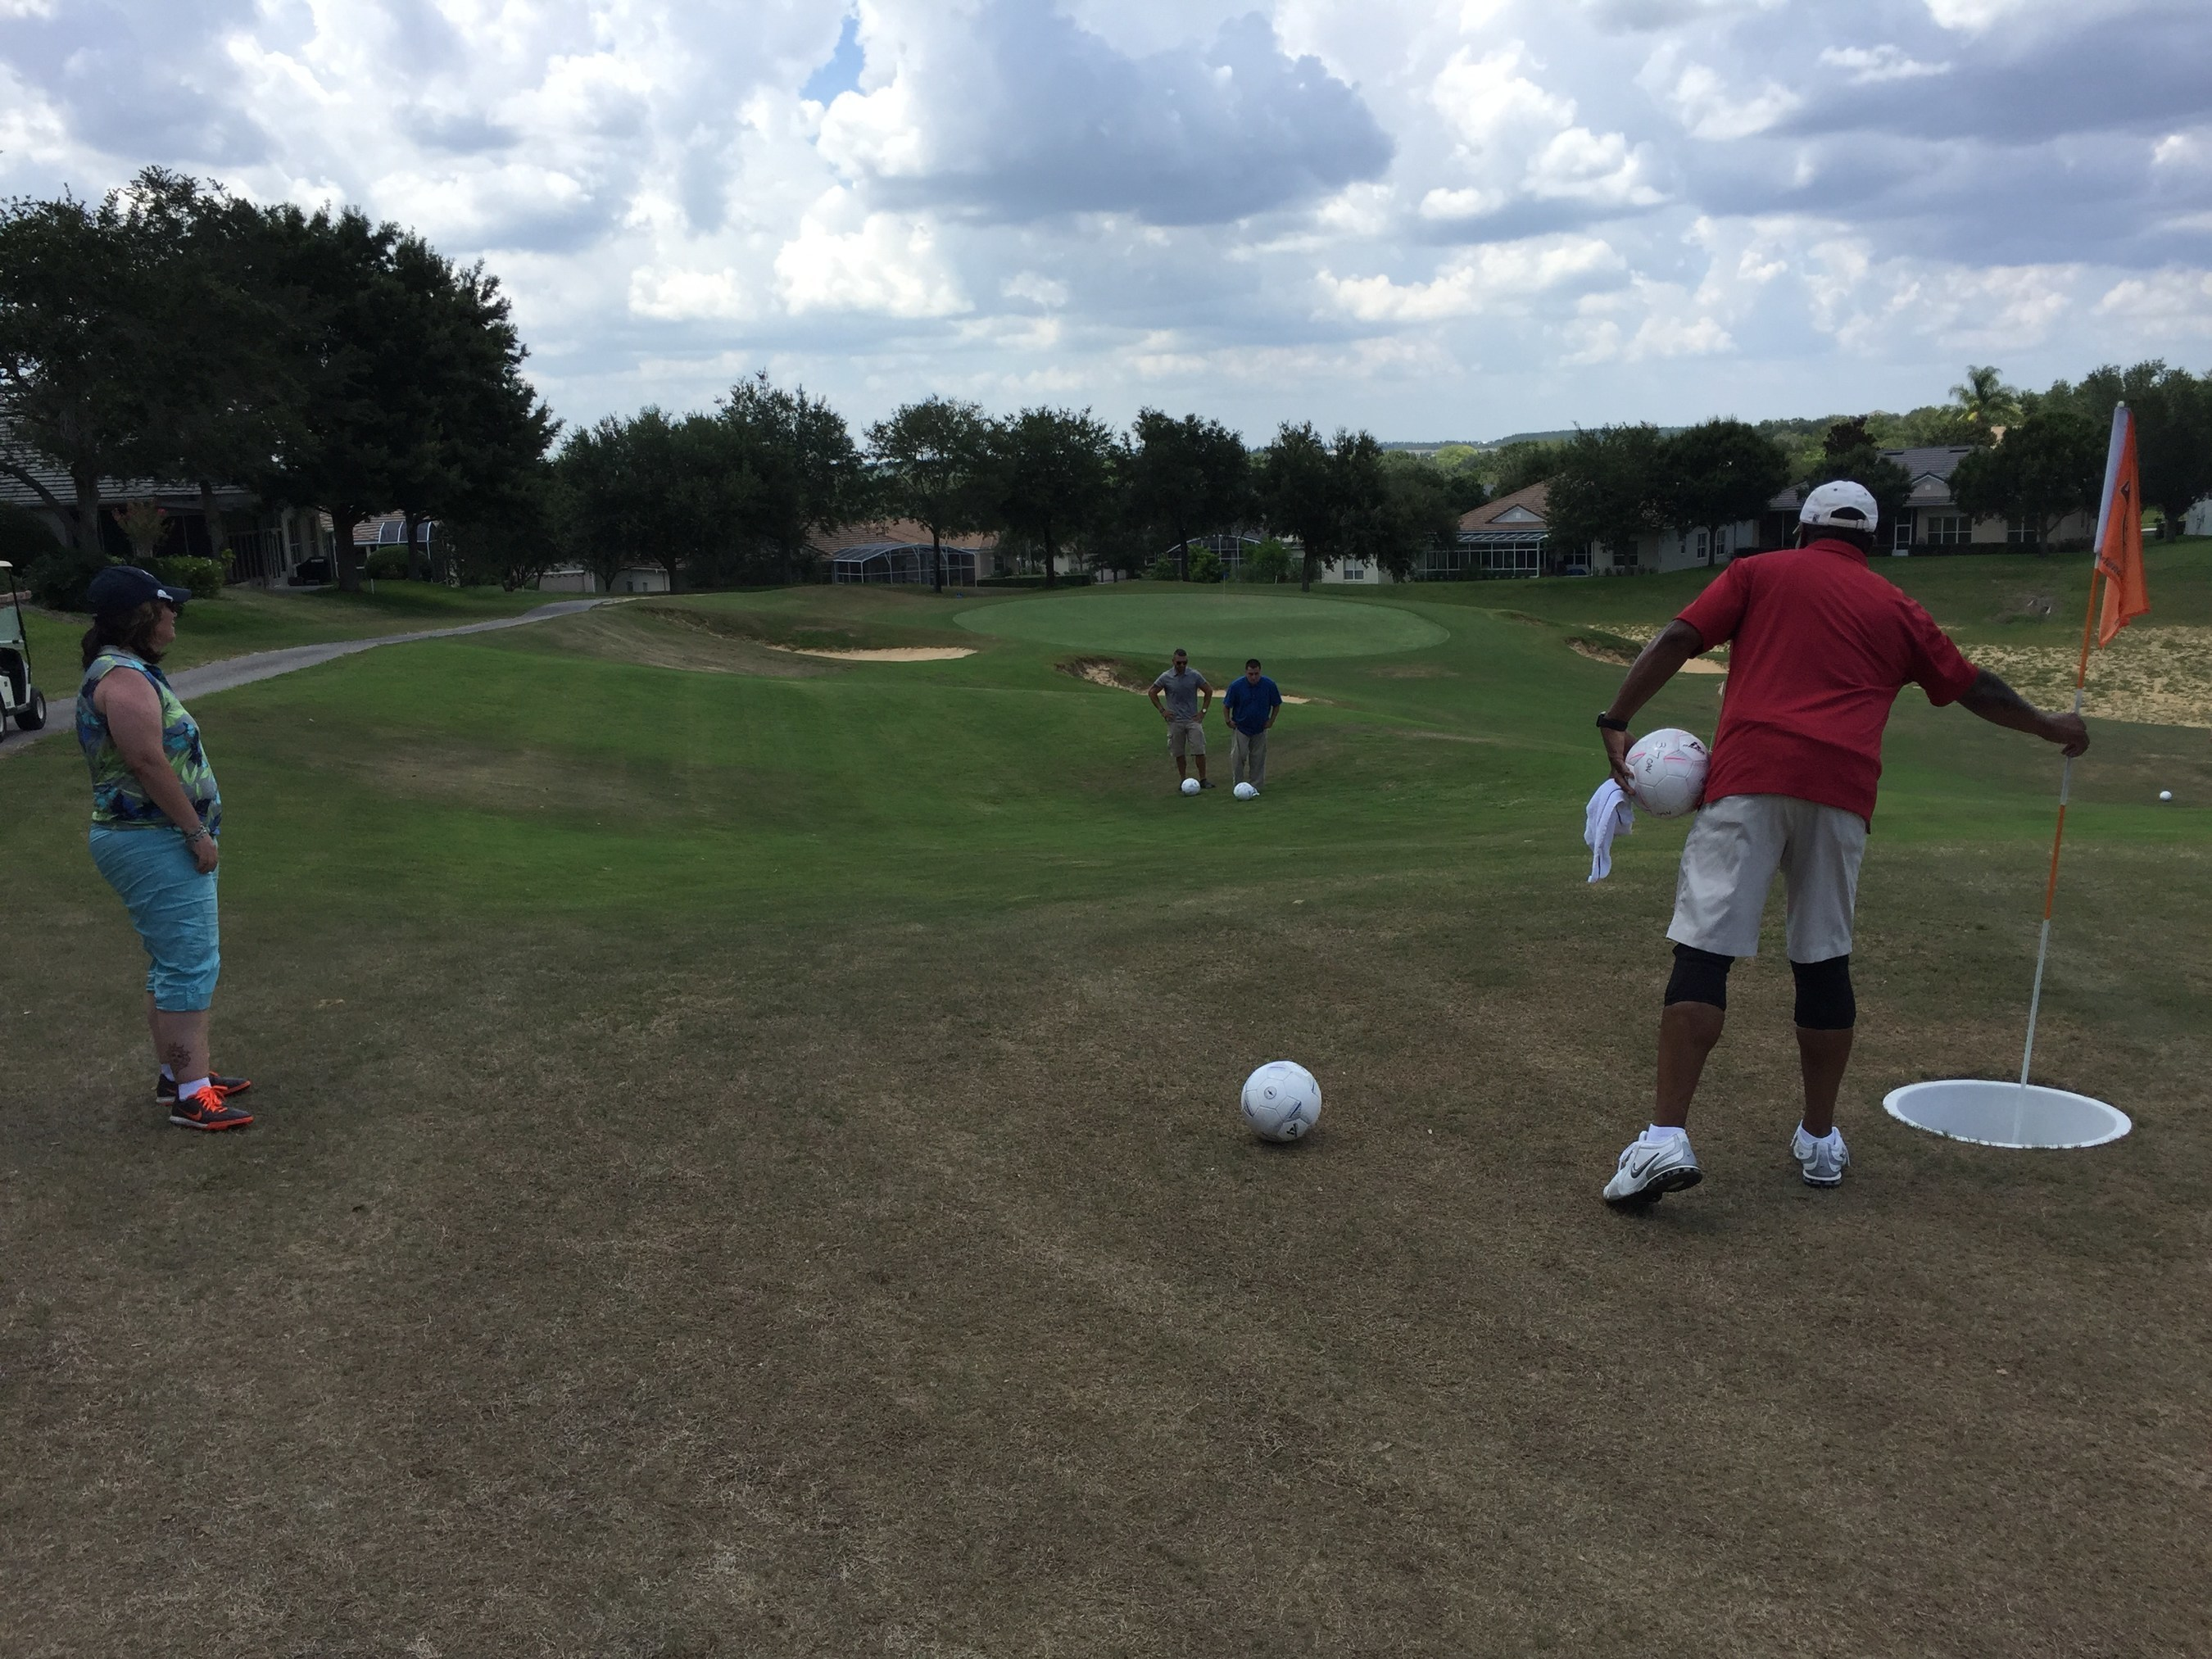 Warriors recently gathered to play a game of footgolf with Wounded Warrior Project in Orlando, Florida on a hot summer day.